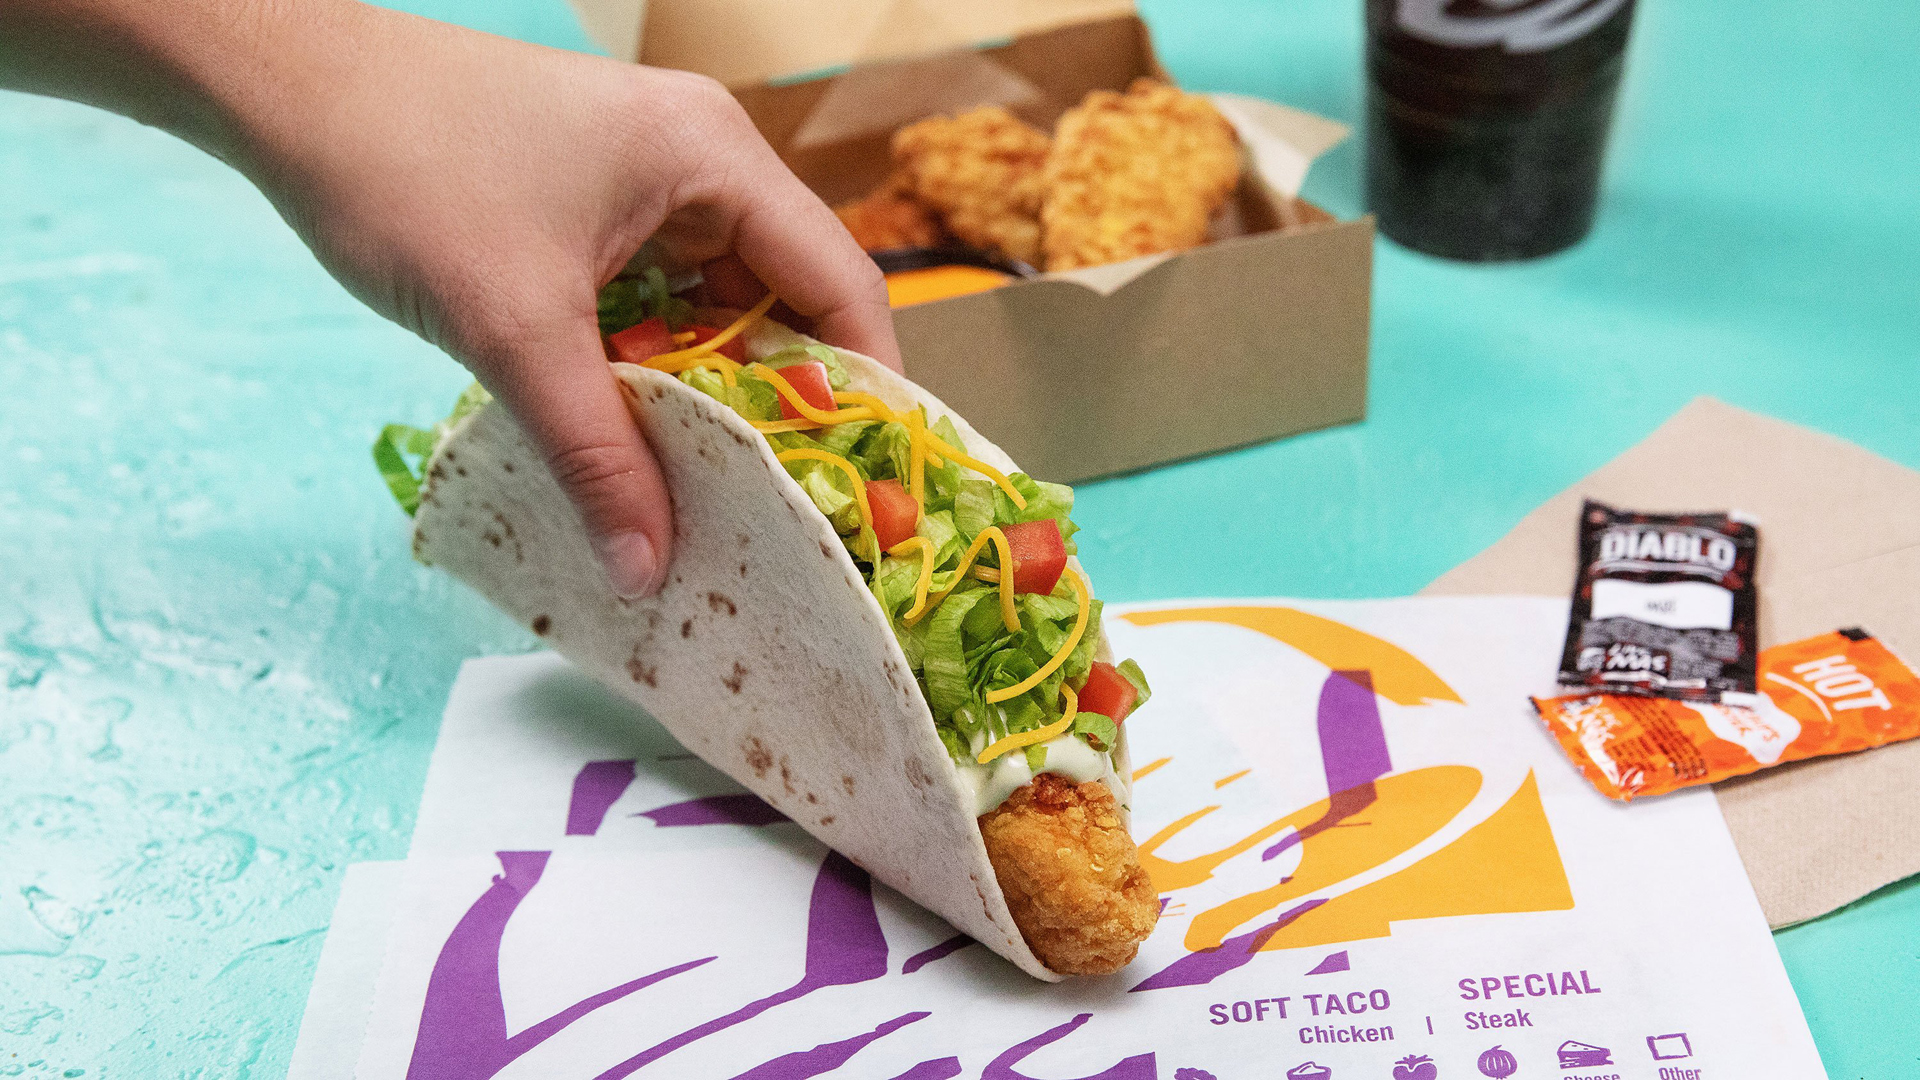 The Texmex chain's fried, spicy Crispy Tortilla Chicken isn't enjoyed between two buns, but it can be rolled up in a taco. (Credit: Taco Bell)